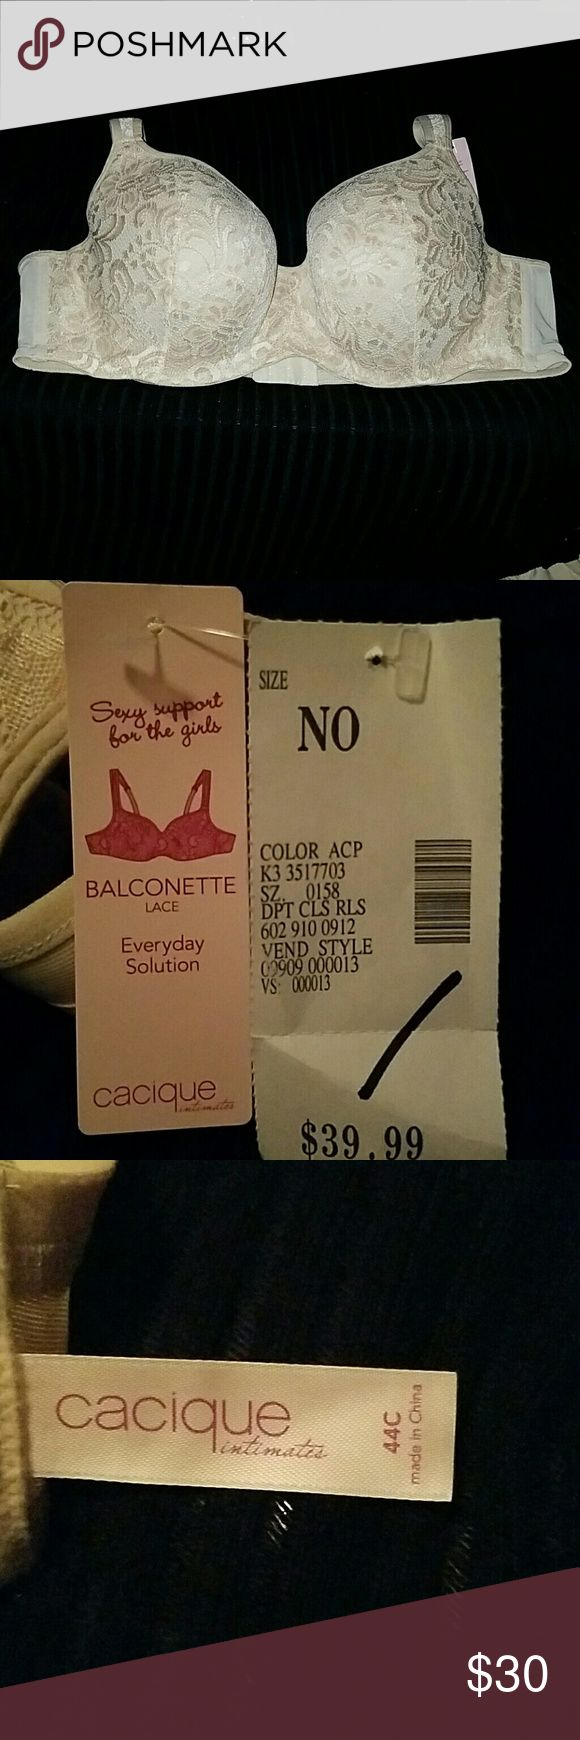 Ladies Bra Sexy Support For the Girls Cream Color Very Pretty Lace Underwire Lots of Support Cacique Intimates & Sleepwear Bras